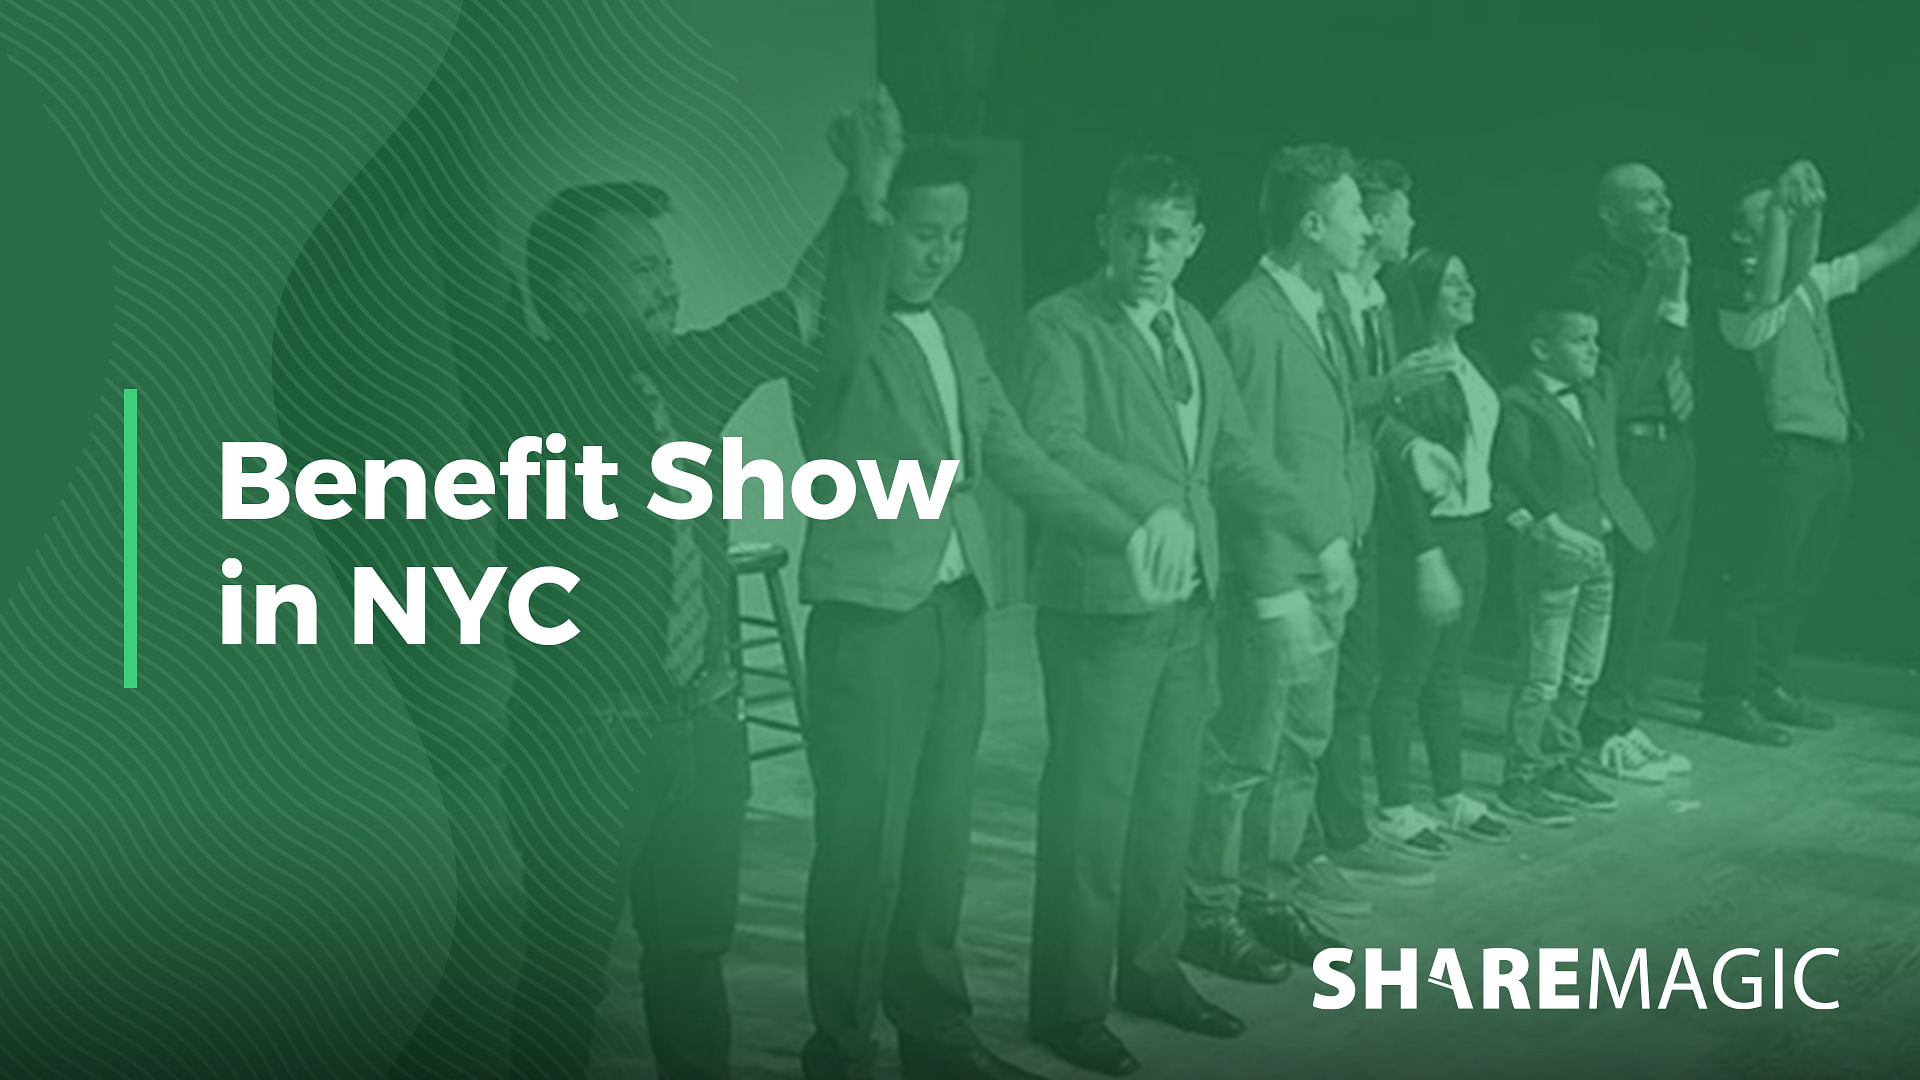 Benefit Show in NYC